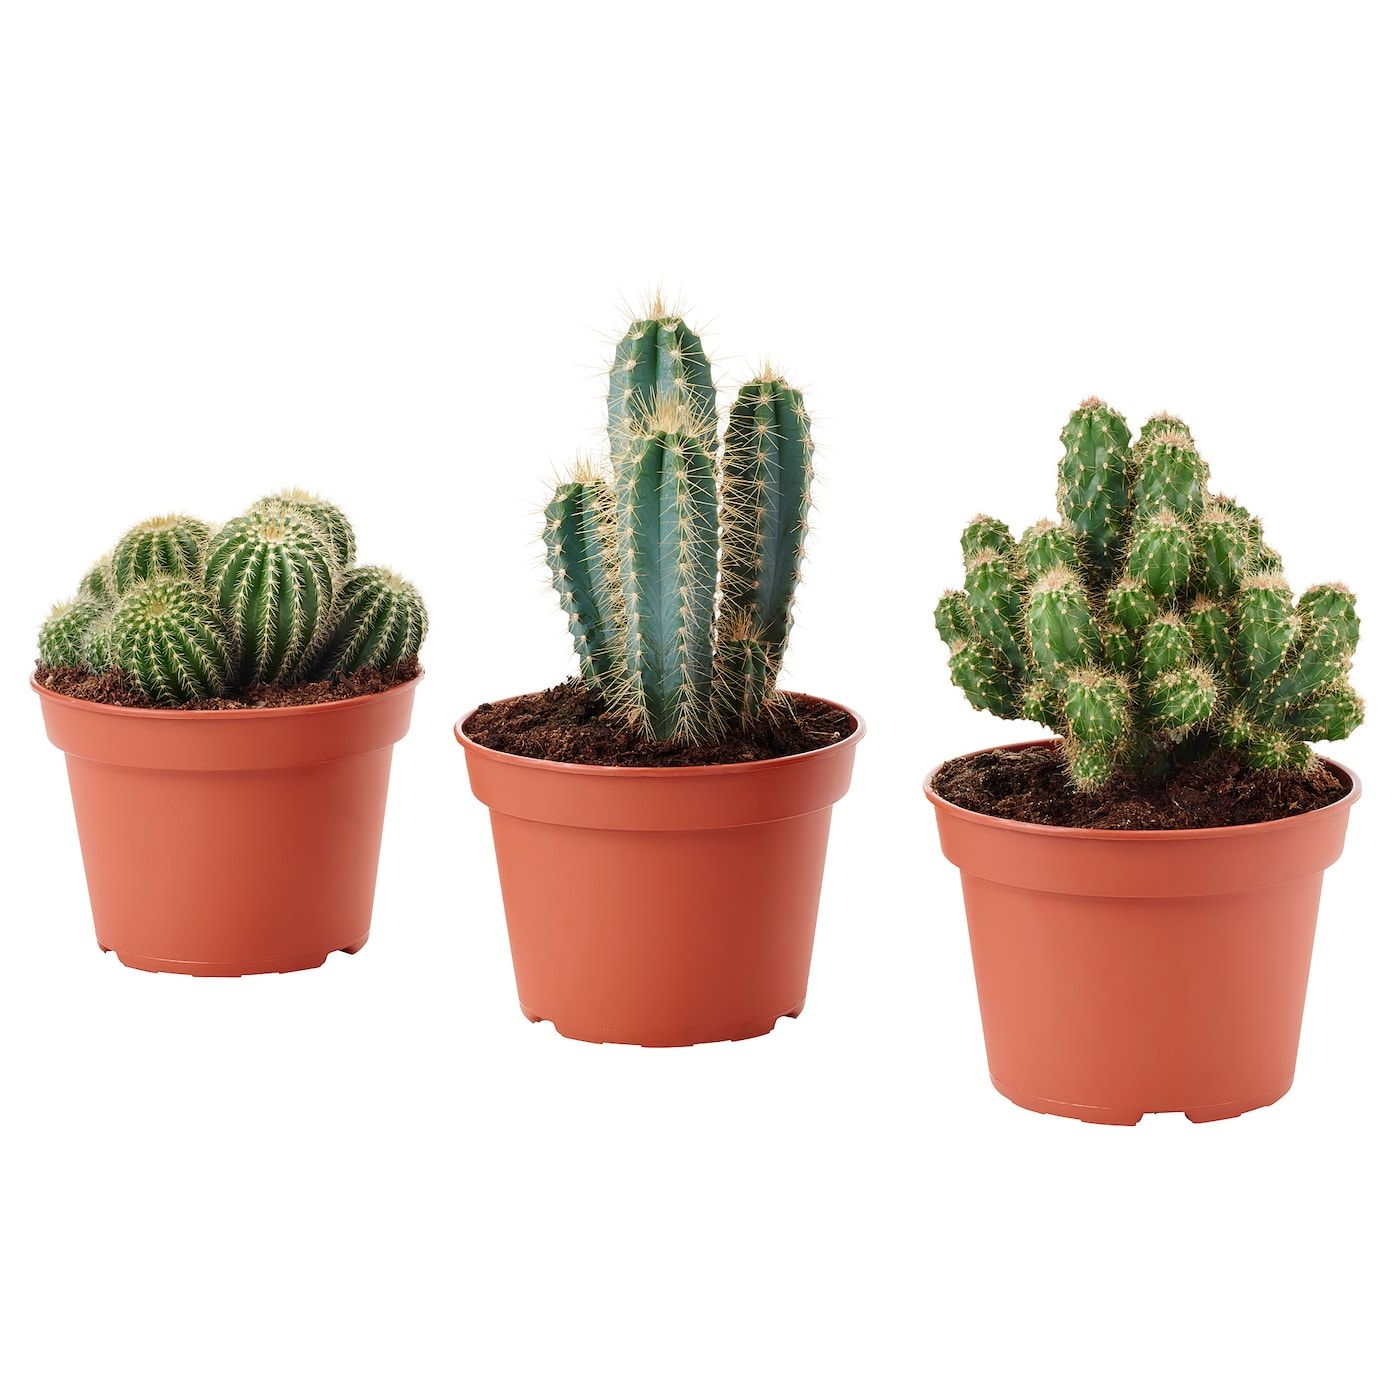 plants cacti house plants potted plants ikea. Black Bedroom Furniture Sets. Home Design Ideas